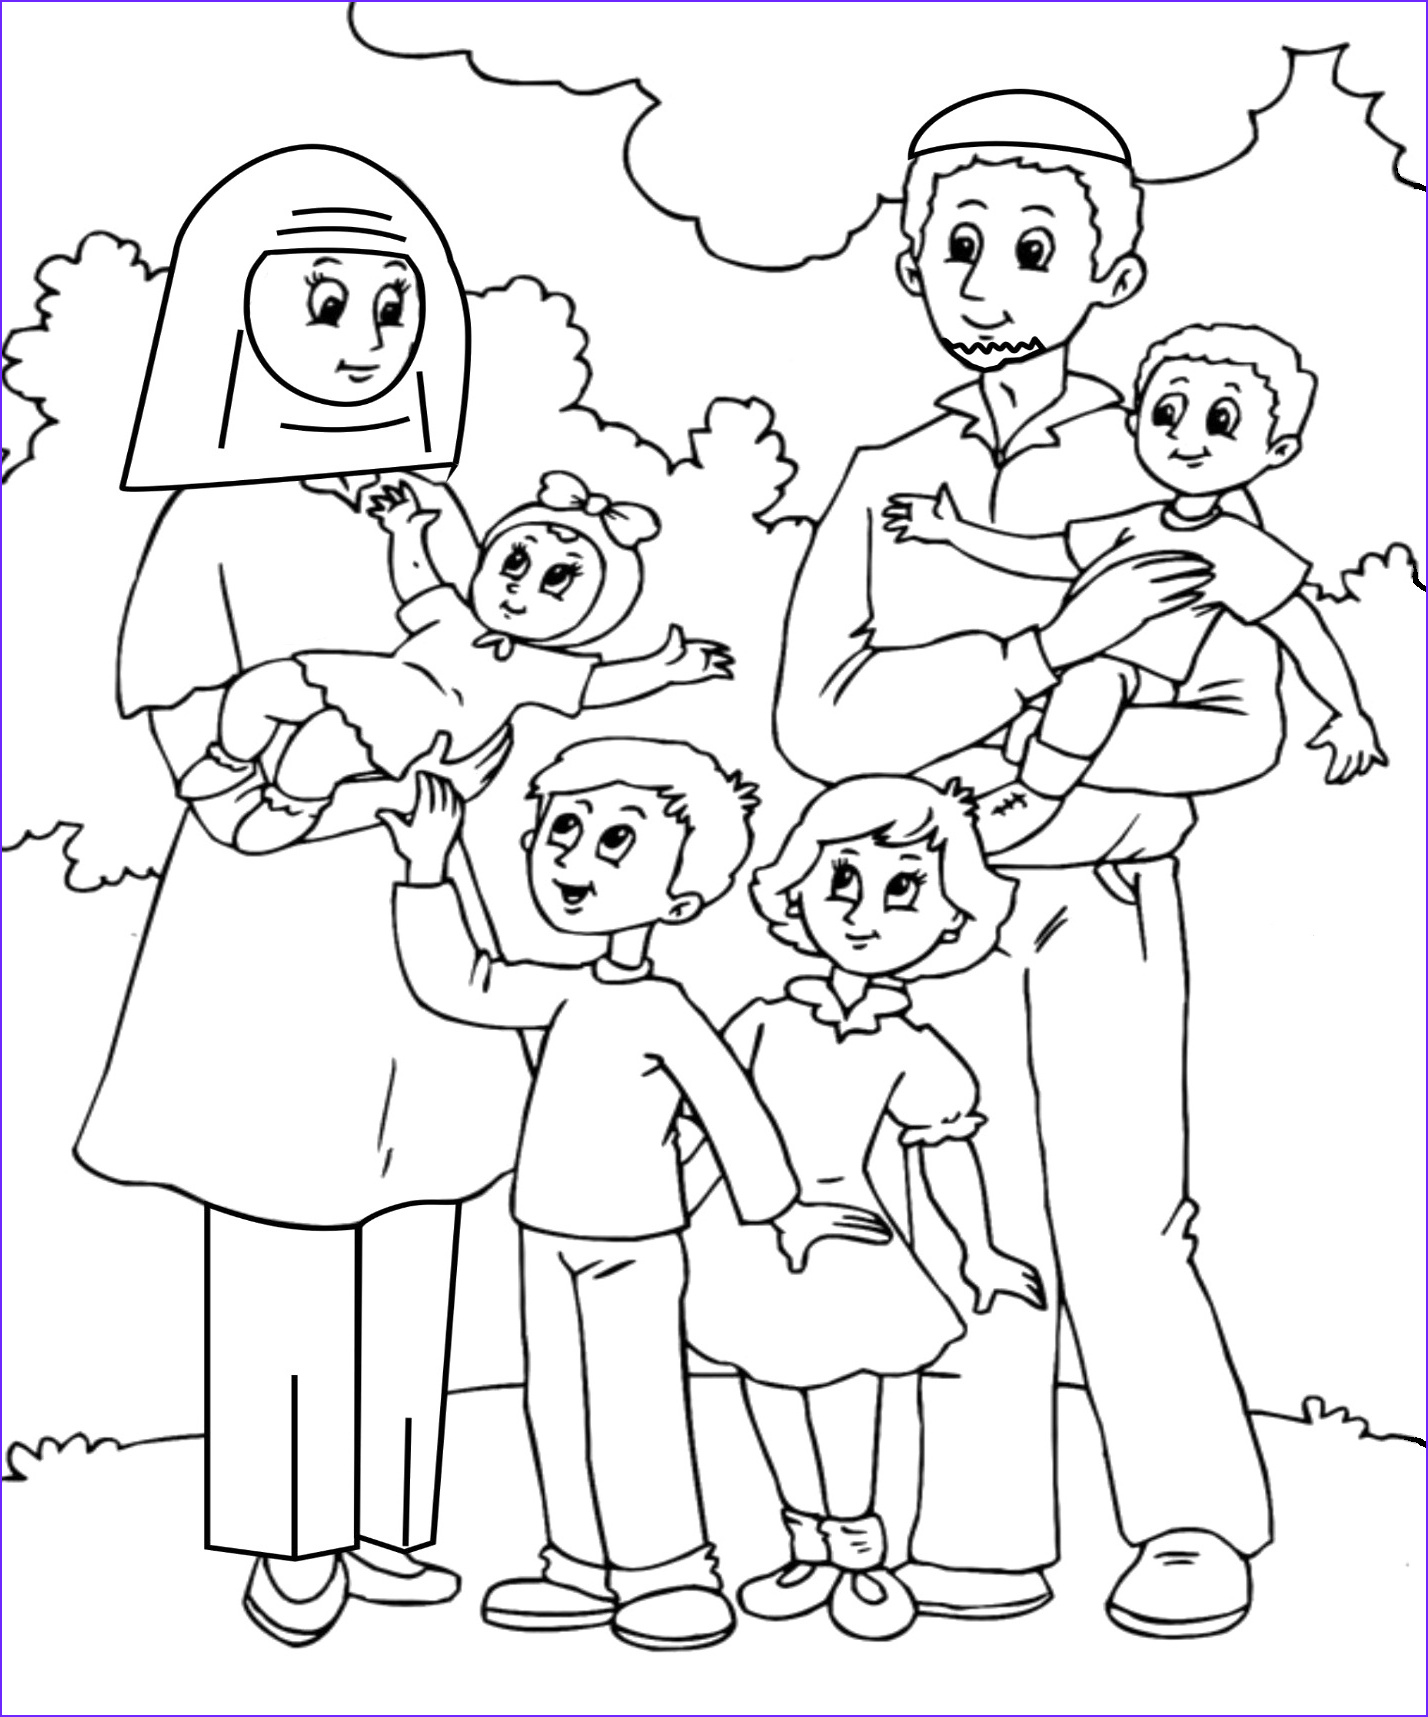 Coloring Pages Family Beautiful Stock Me and My Family Drawing at Getdrawings